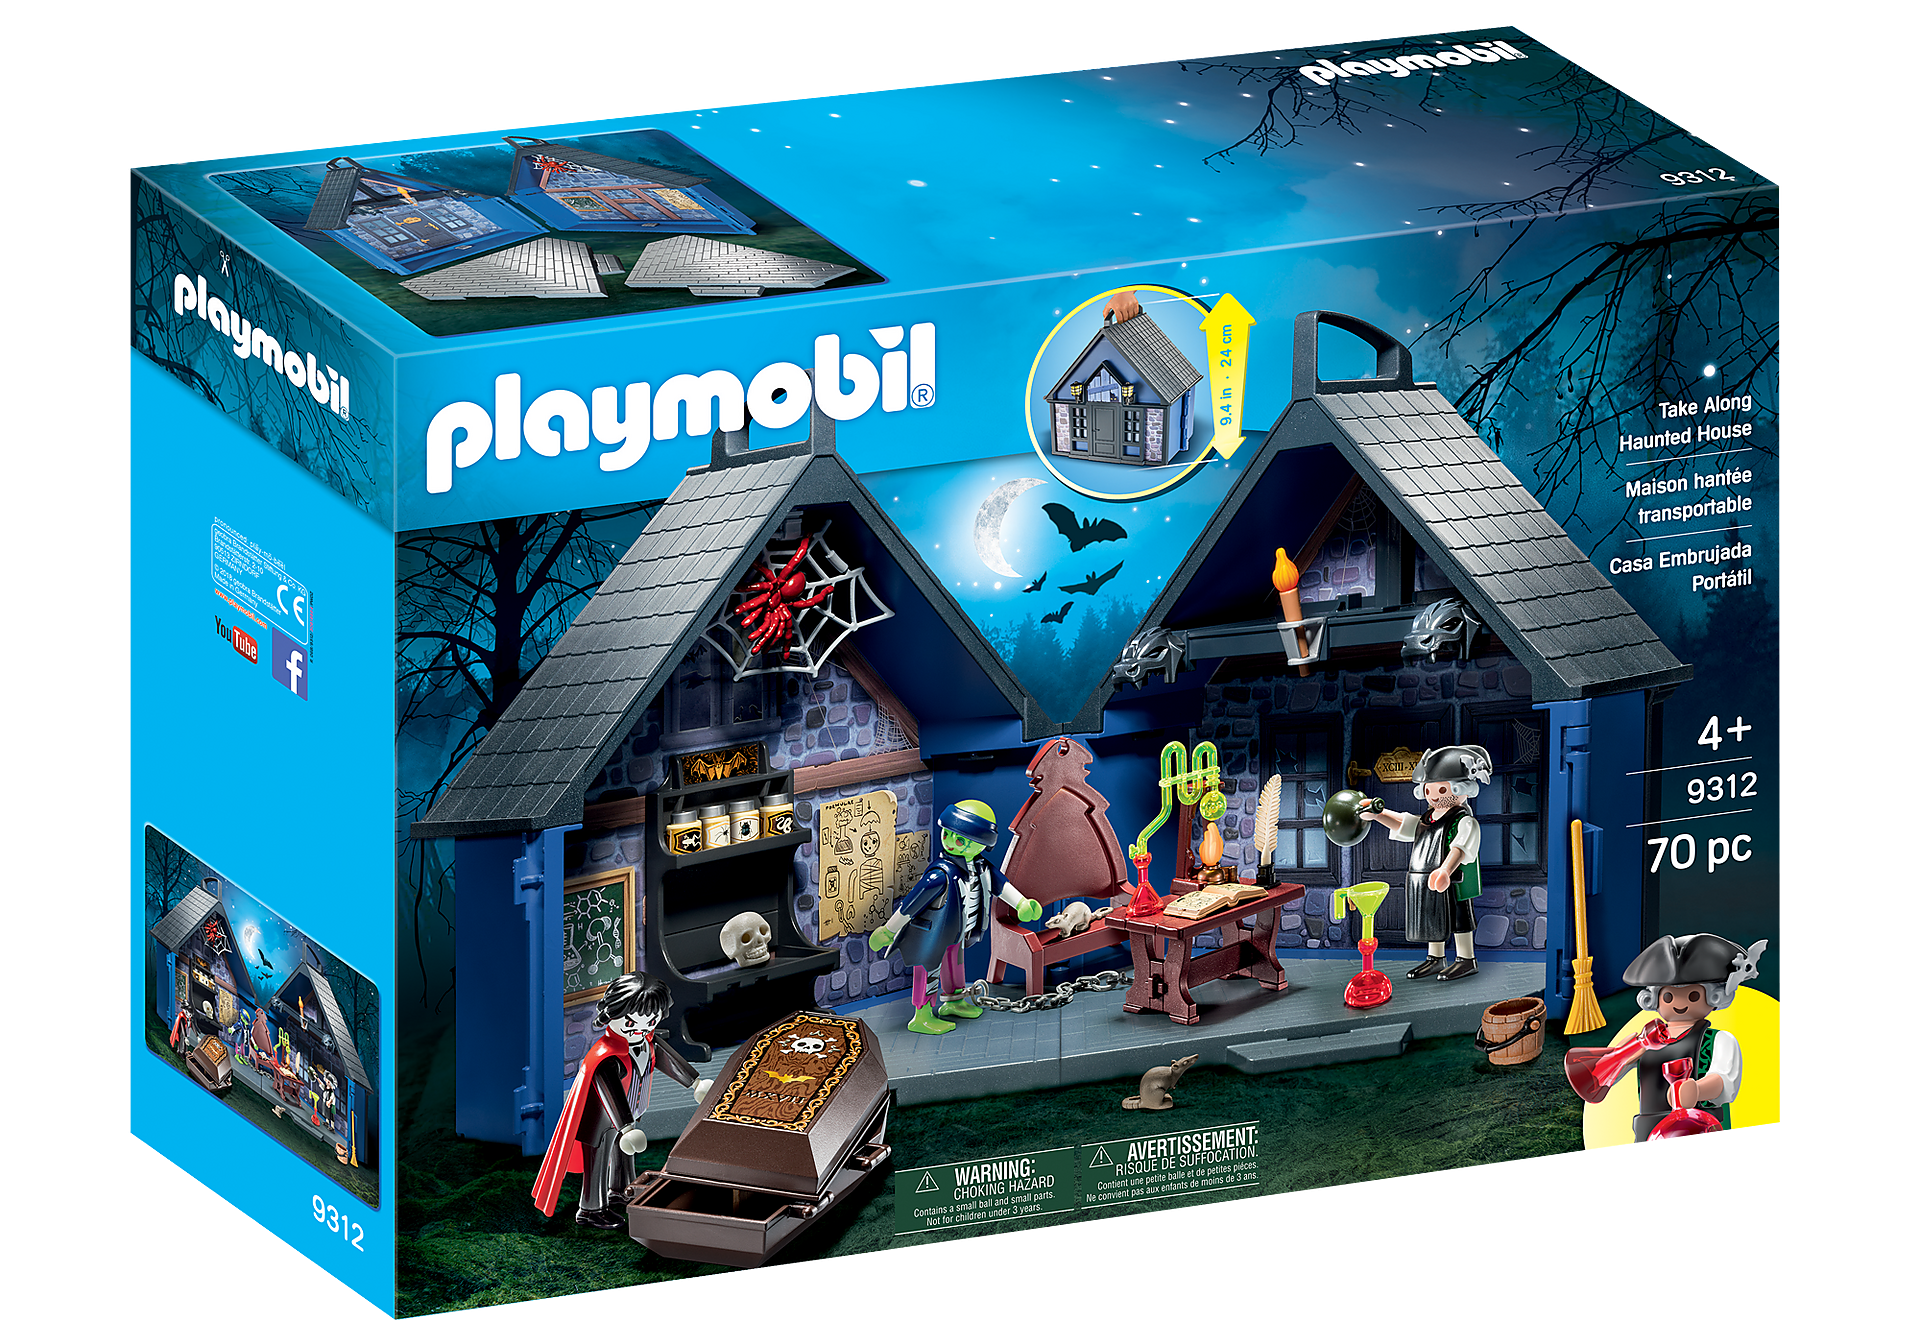 http://media.playmobil.com/i/playmobil/9312_product_box_front/Take Along Haunted House